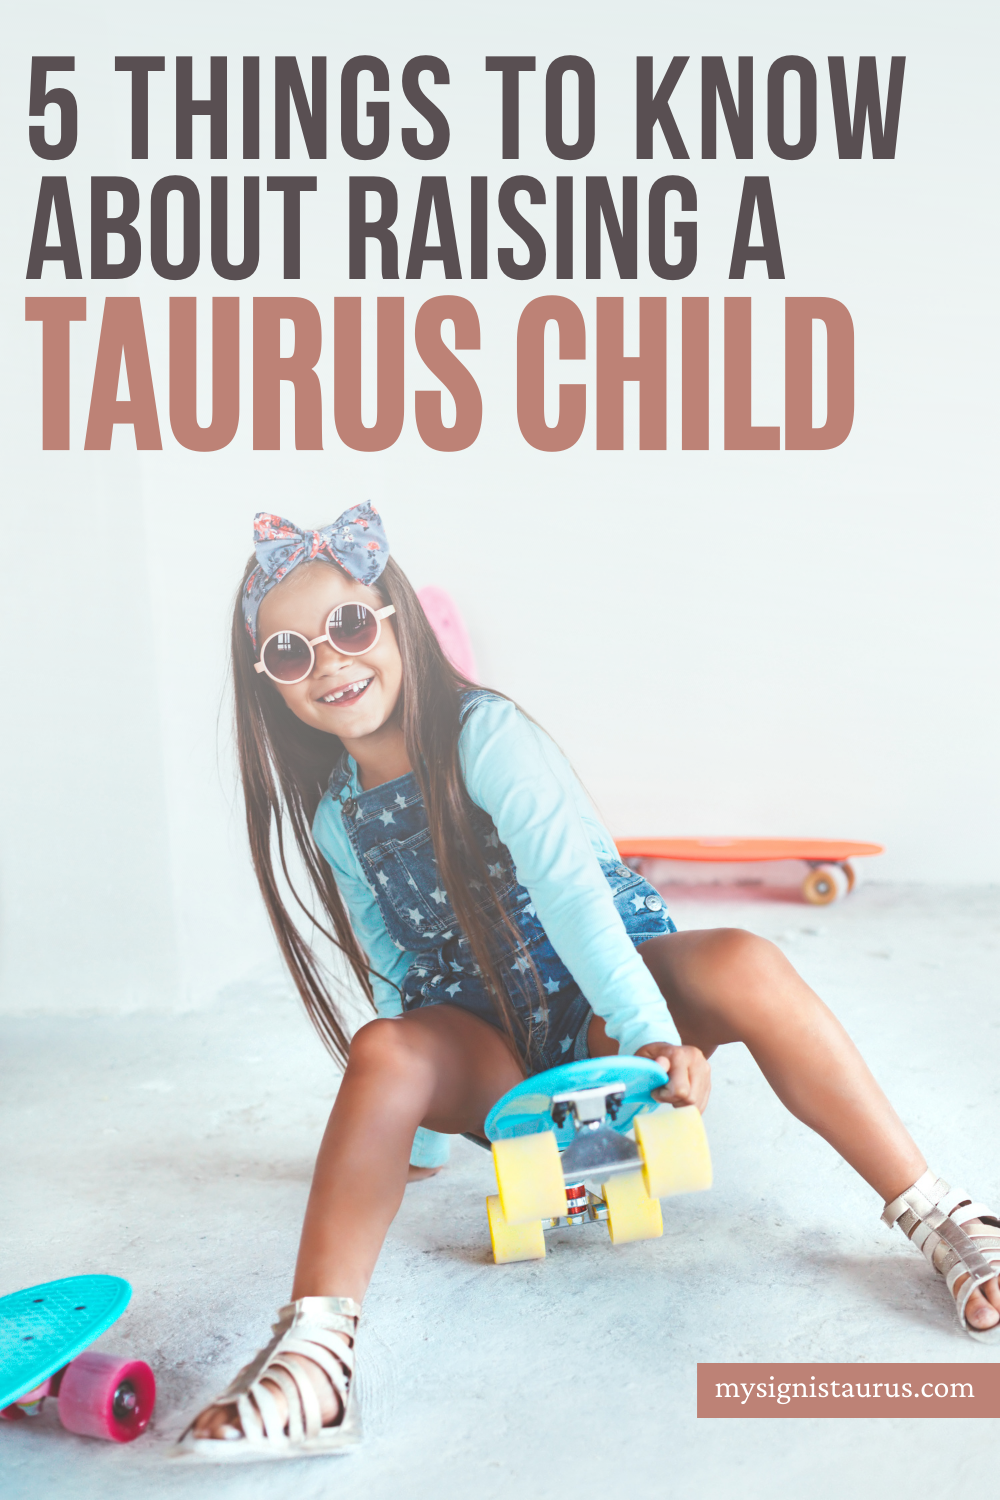 Interesting Things You Should Know About Raising A Taurus Child, Tips for Taurus kid #taurus #taurussign #taurusseason #astrology #zodiac